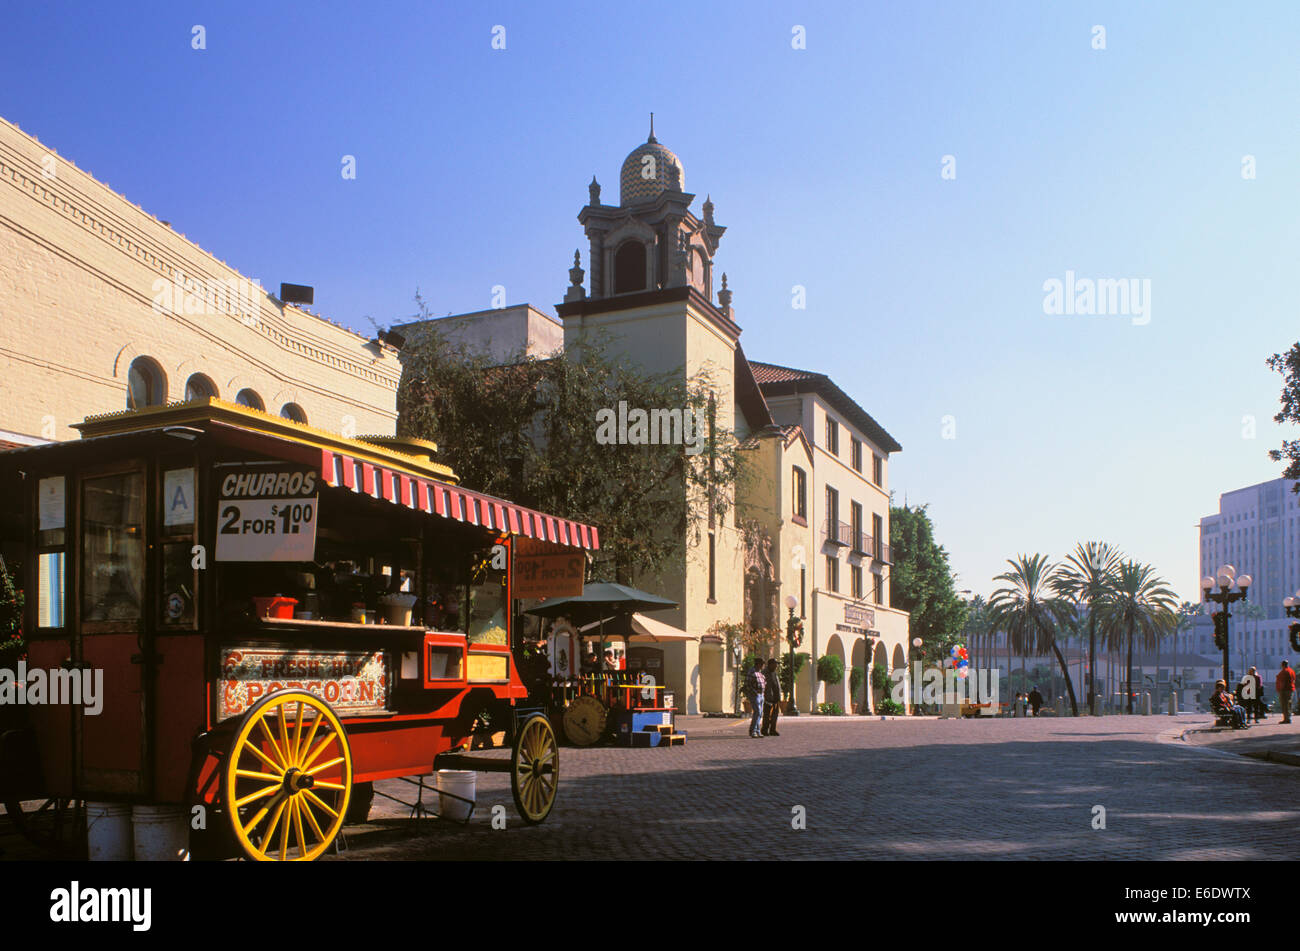 Old Plaza, El Pueblo de Los Angeles, Olivera Street, California, USA. - Stock Image